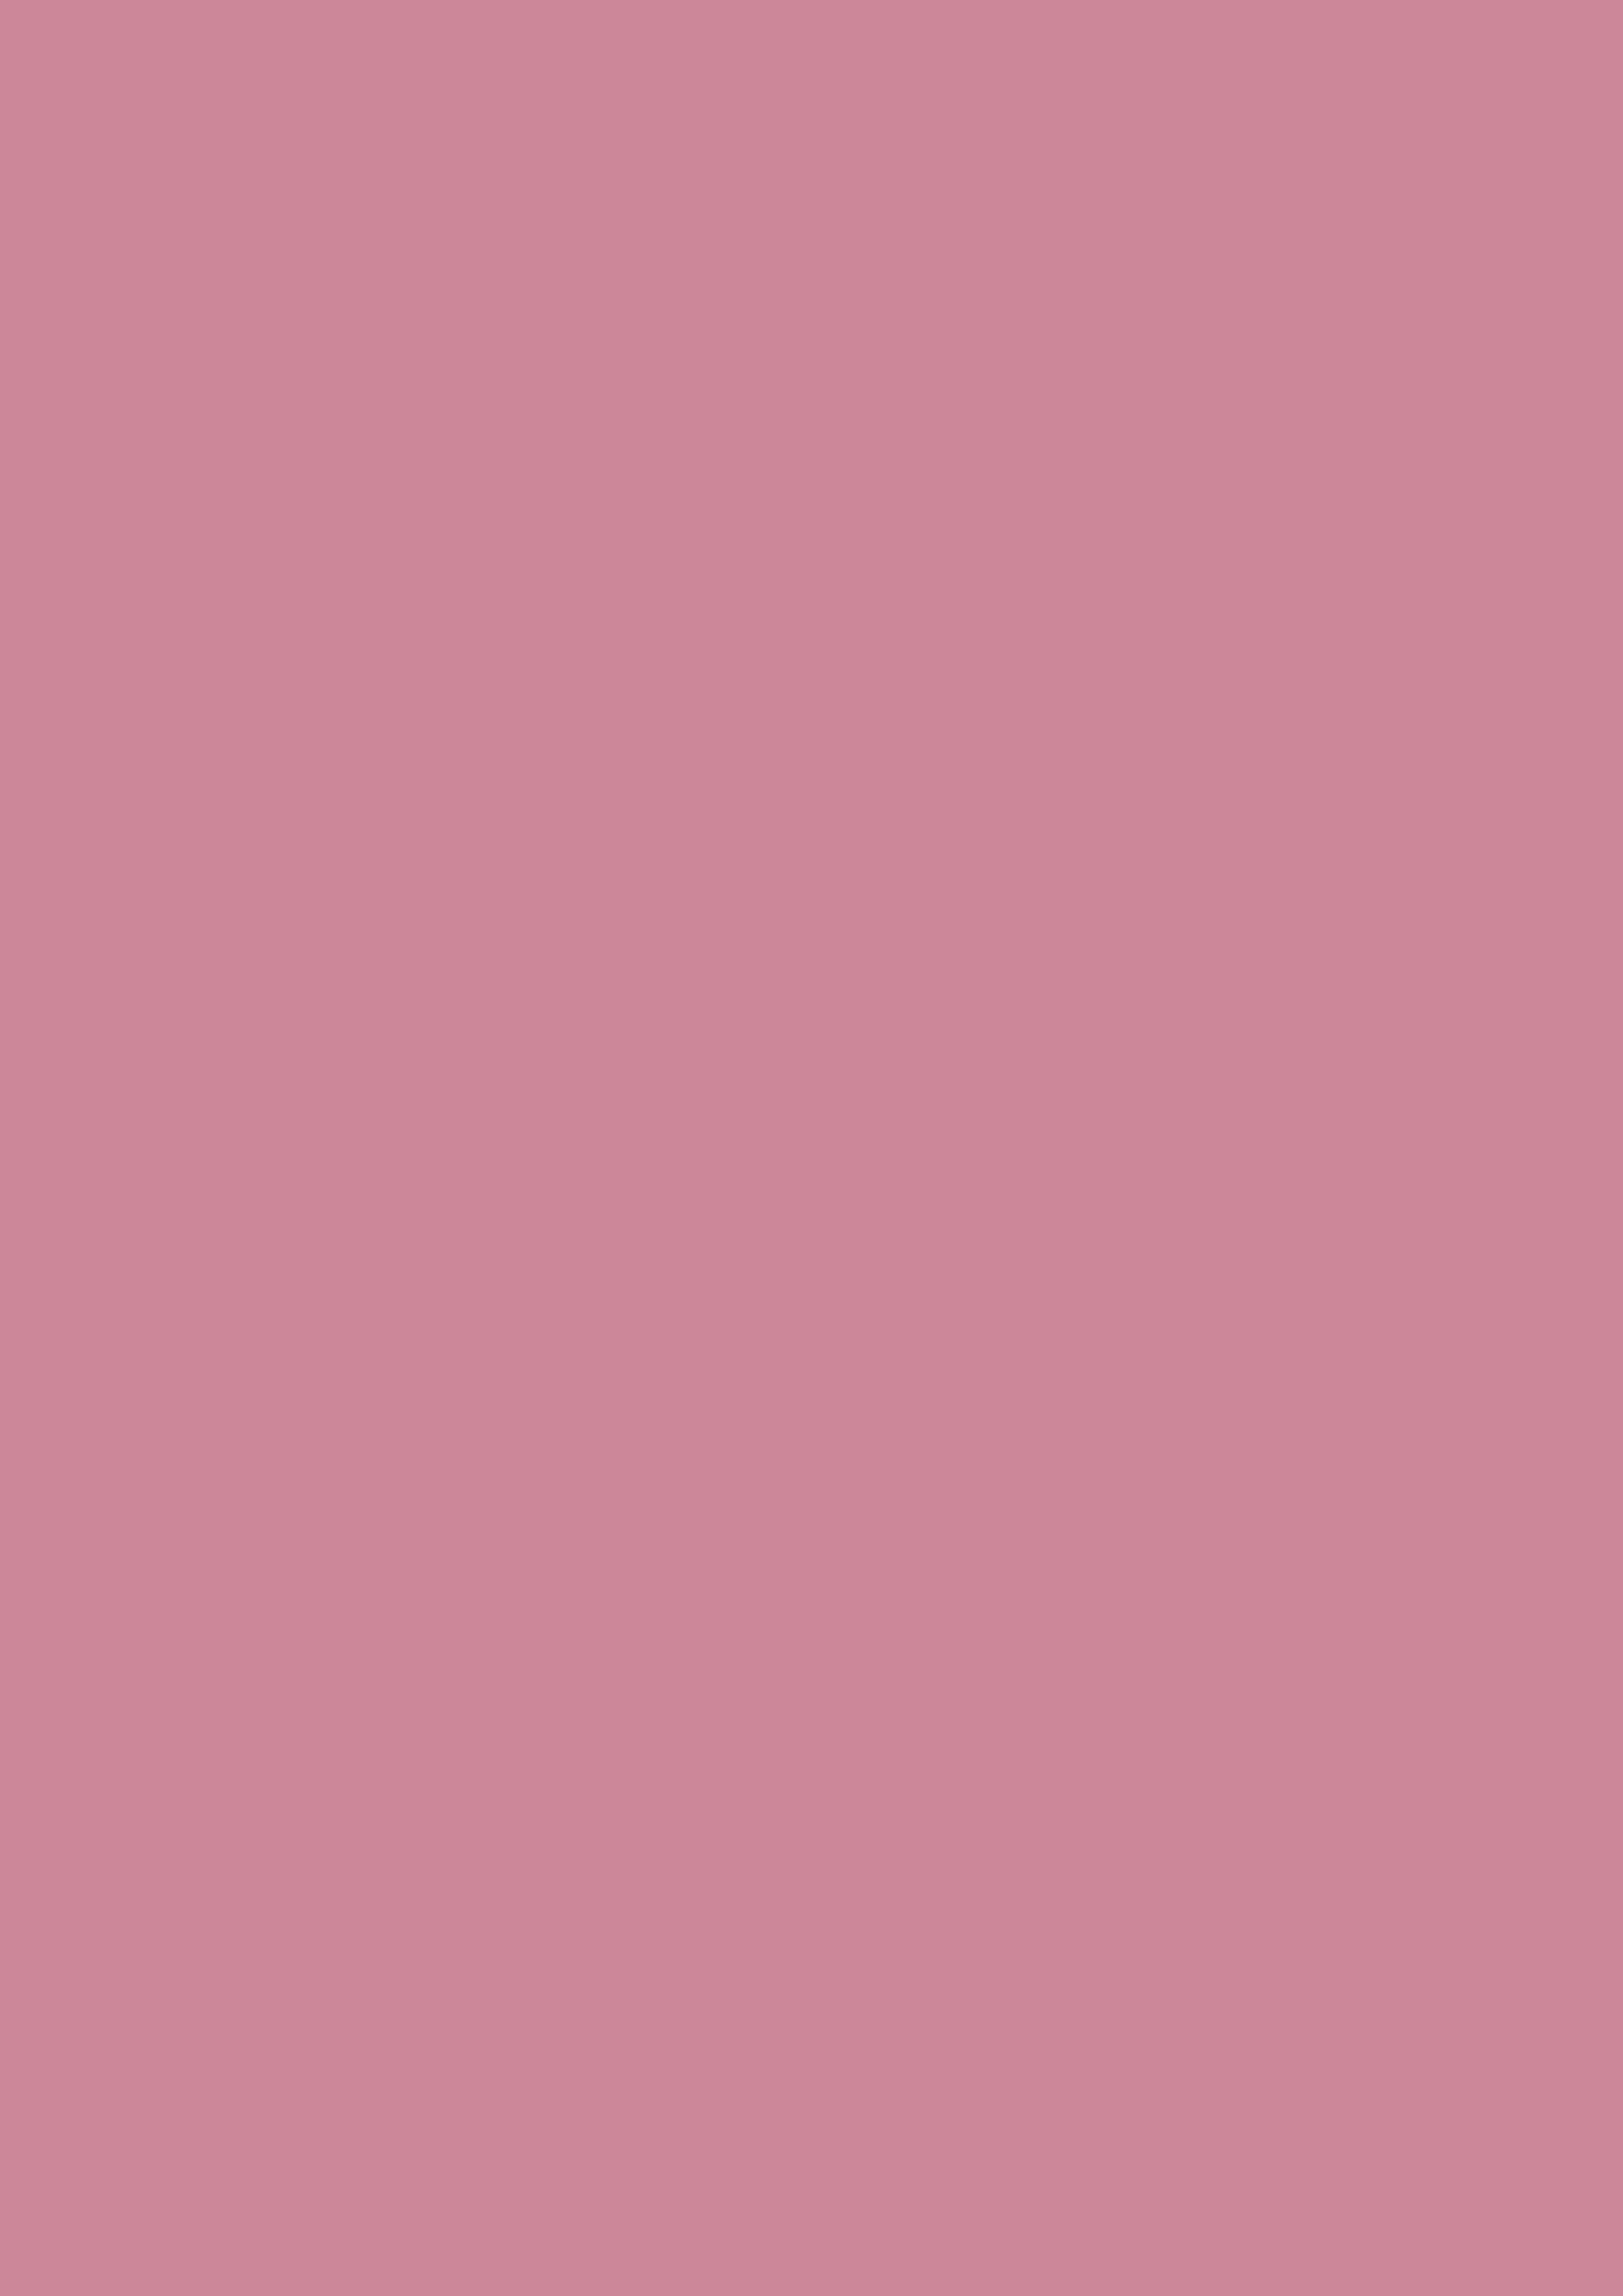 2480x3508 Puce Solid Color Background